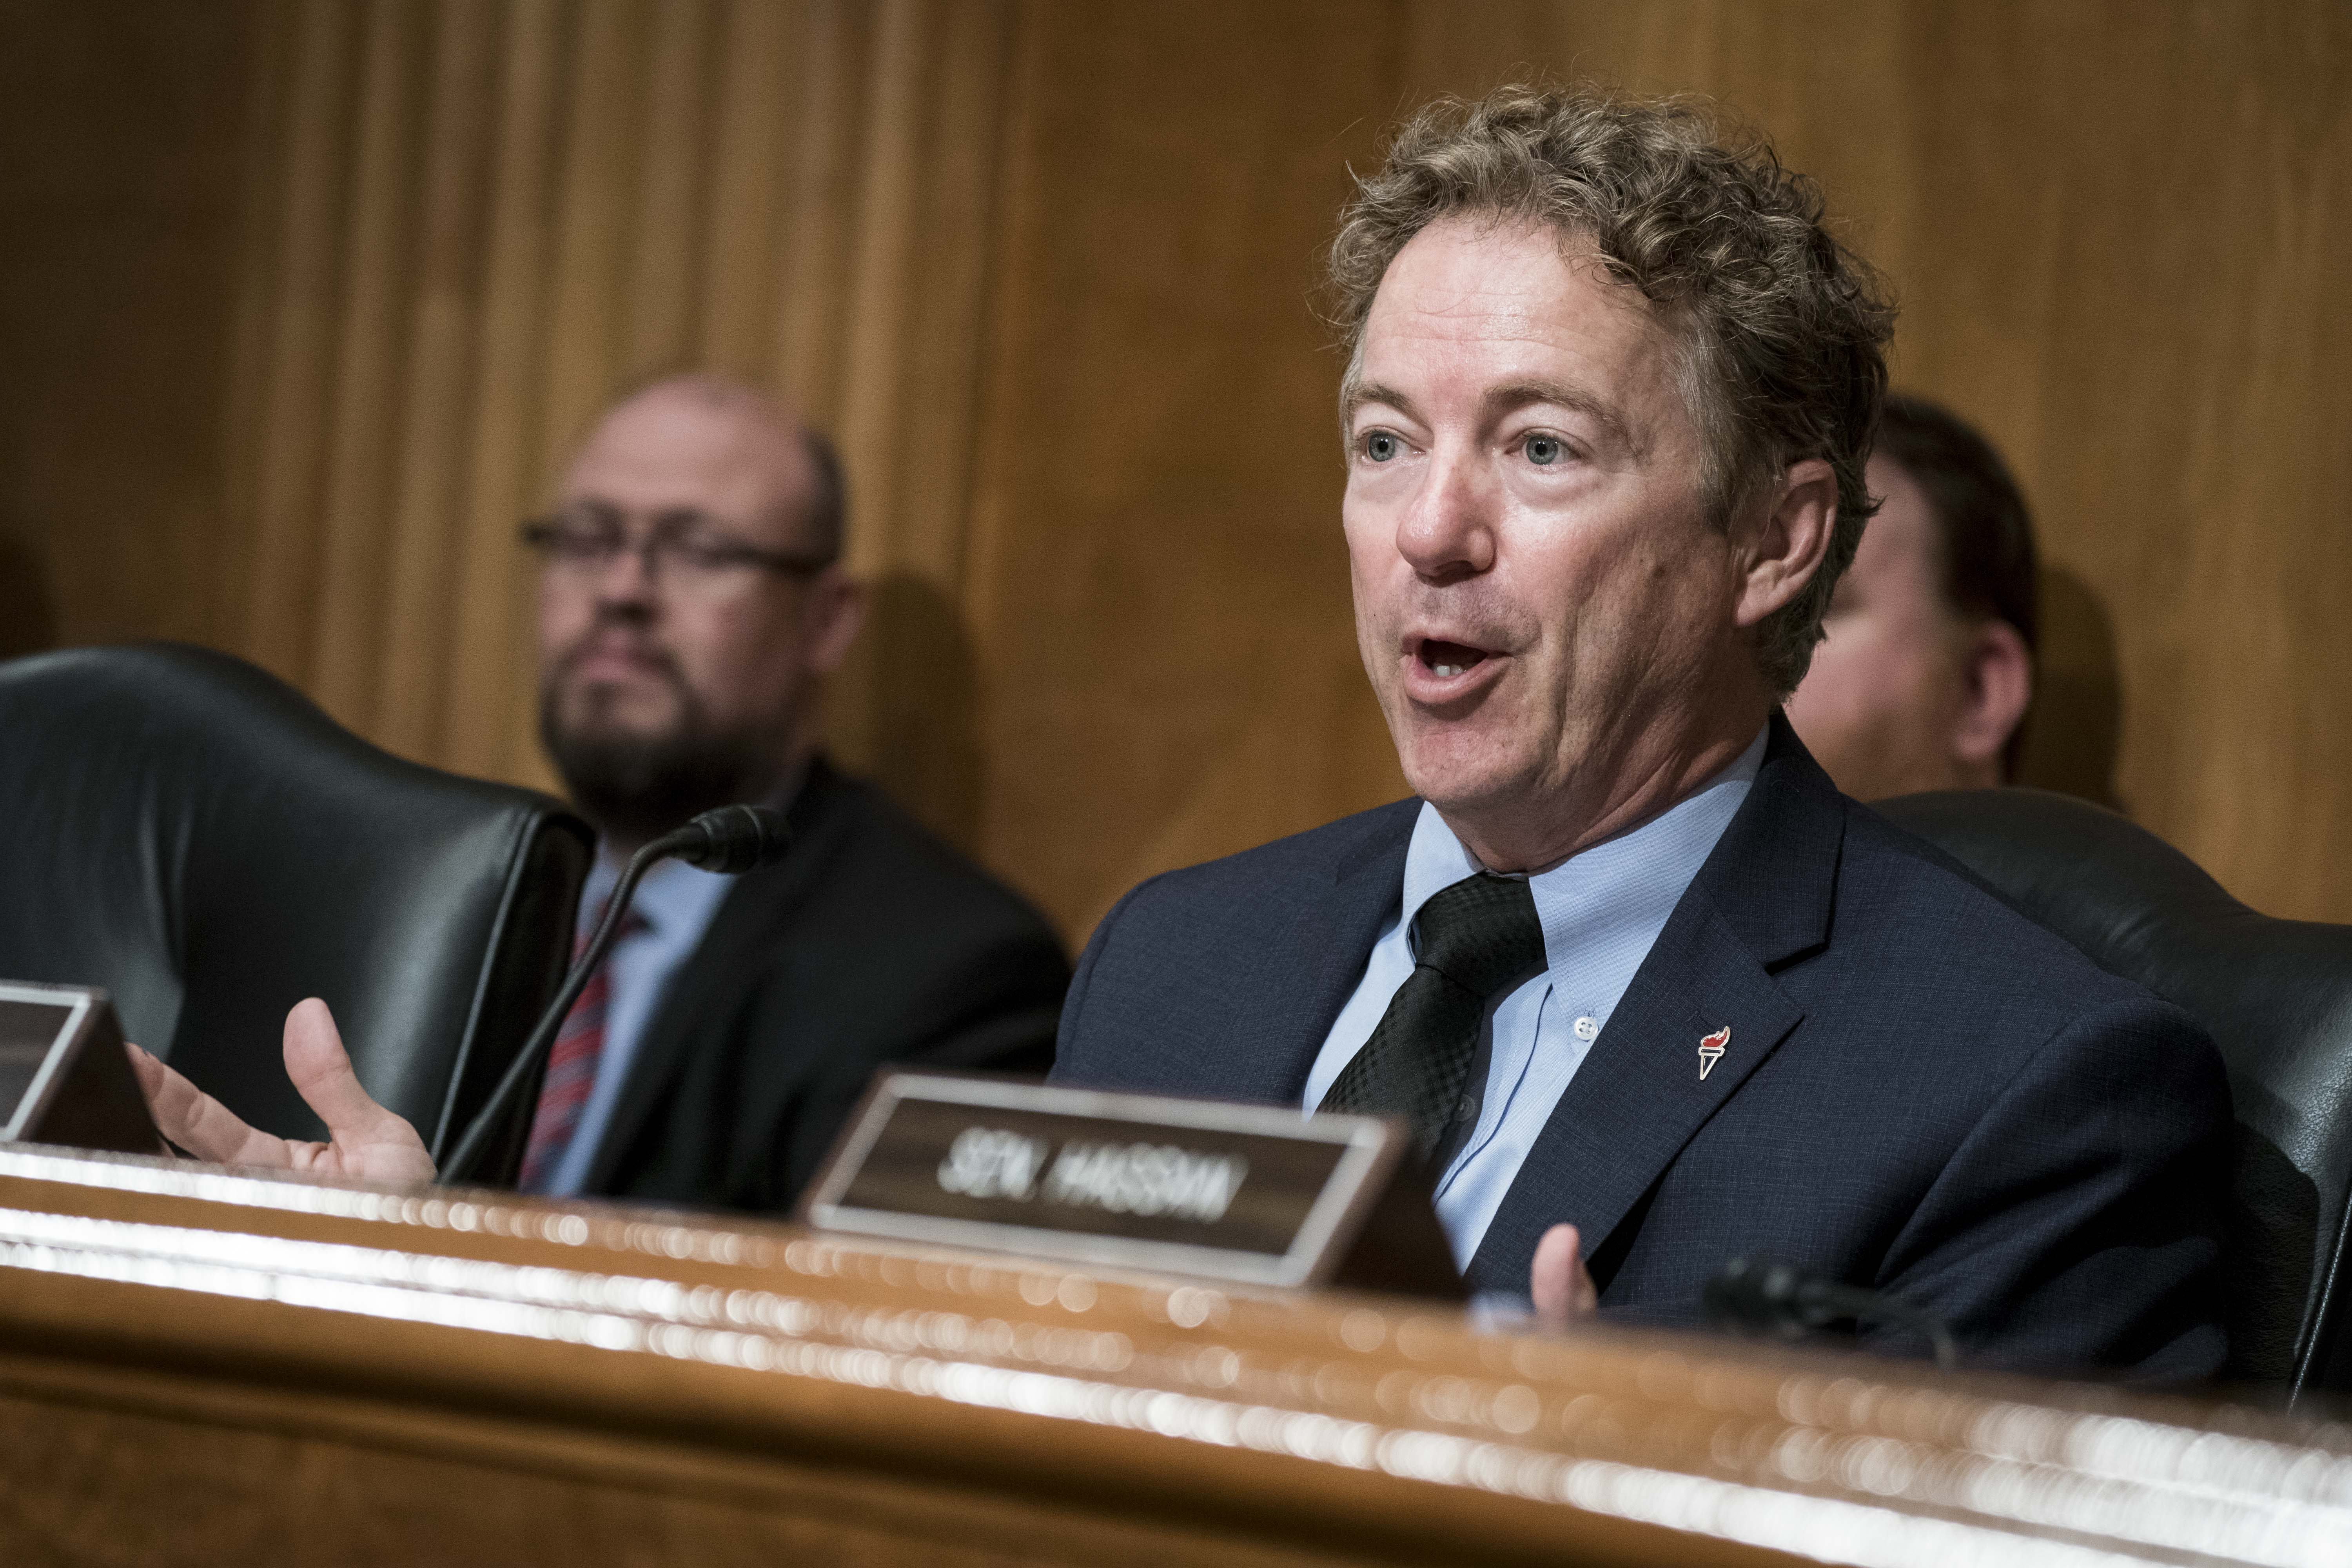 WASHINGTON, DC - FEBRUARY 11: Senator Rand Paul (R-KY) delivers an opening statement before John F. Sopko, special inspector general for Afghanistan reconstruction, testifies before the Senate Homeland Security and Governmental Affairs Committee in the Dirksen Senate Office Building on February 11, 2020 in Washington, DC. The Senate committee heard testimony on the costs and benefits of the war in Afghanistan which is America's longest war. (Photo by Sarah Silbiger/Getty Images)